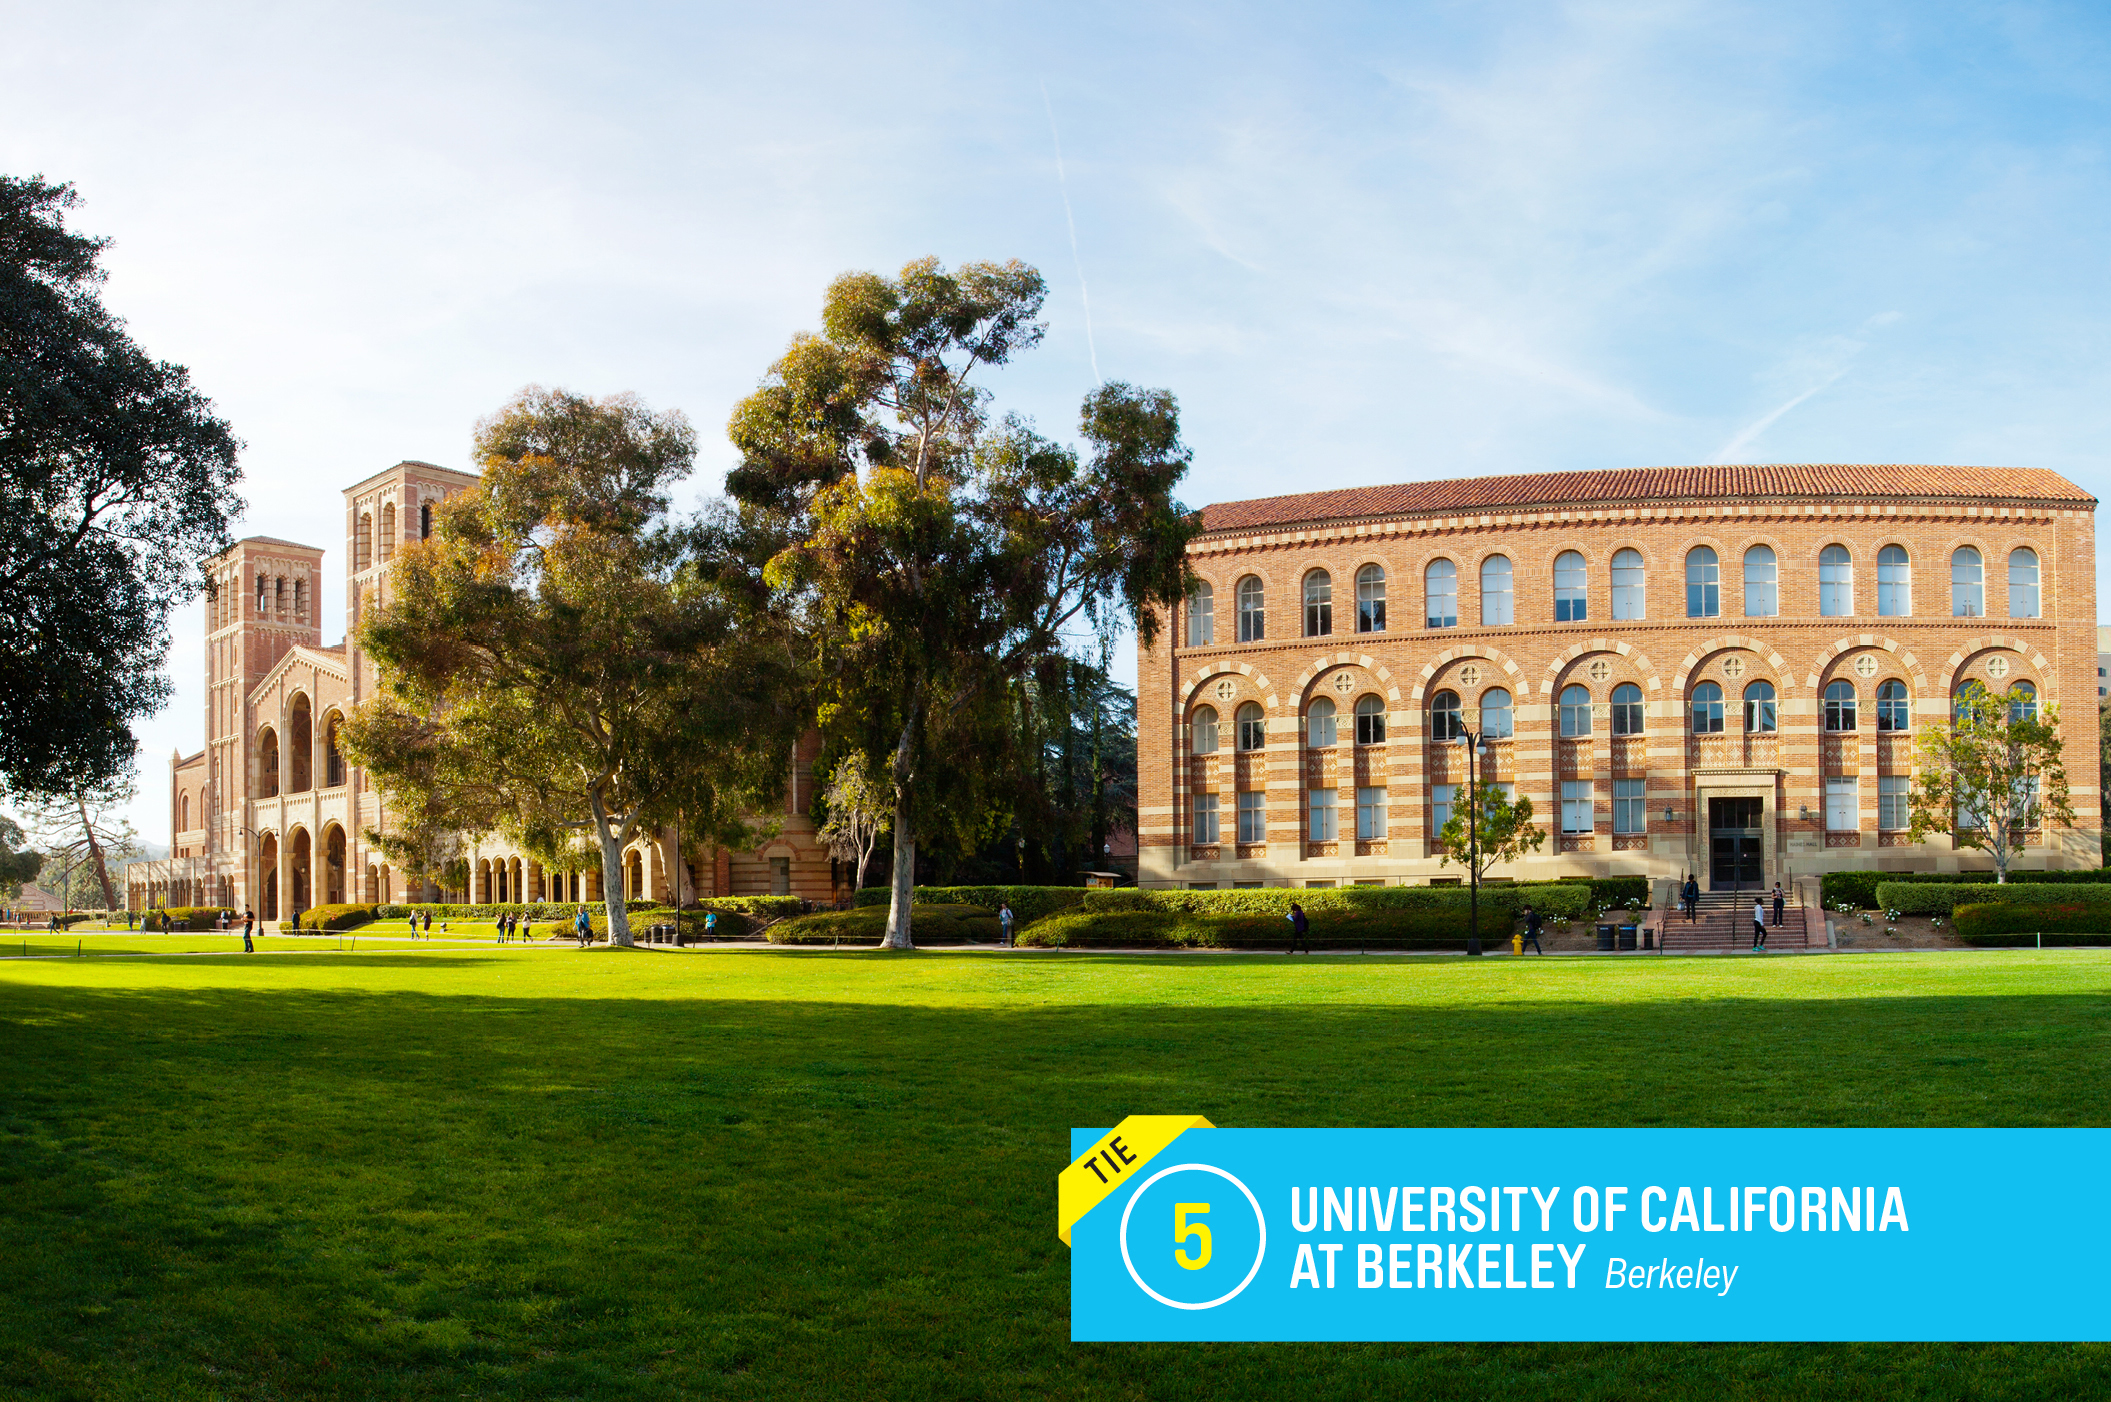 """<a href=""""https://money.com/best-colleges/profile/university-of-california-berkeley/"""" target=""""_blank"""">UC-Berkeley</a>, or Cal for short, ranks the highest of eight University of California system schools that made Money's rankings. In fact, Cal is one of the most selective public colleges in the country. More than 90% of freshmen graduate within six years, a rate well above even other elite public universities.                                           <a href=""""https://money.com/best-colleges/profile/university-of-california-berkeley/"""" target=""""_blank"""">FULL PROFILE</a>"""